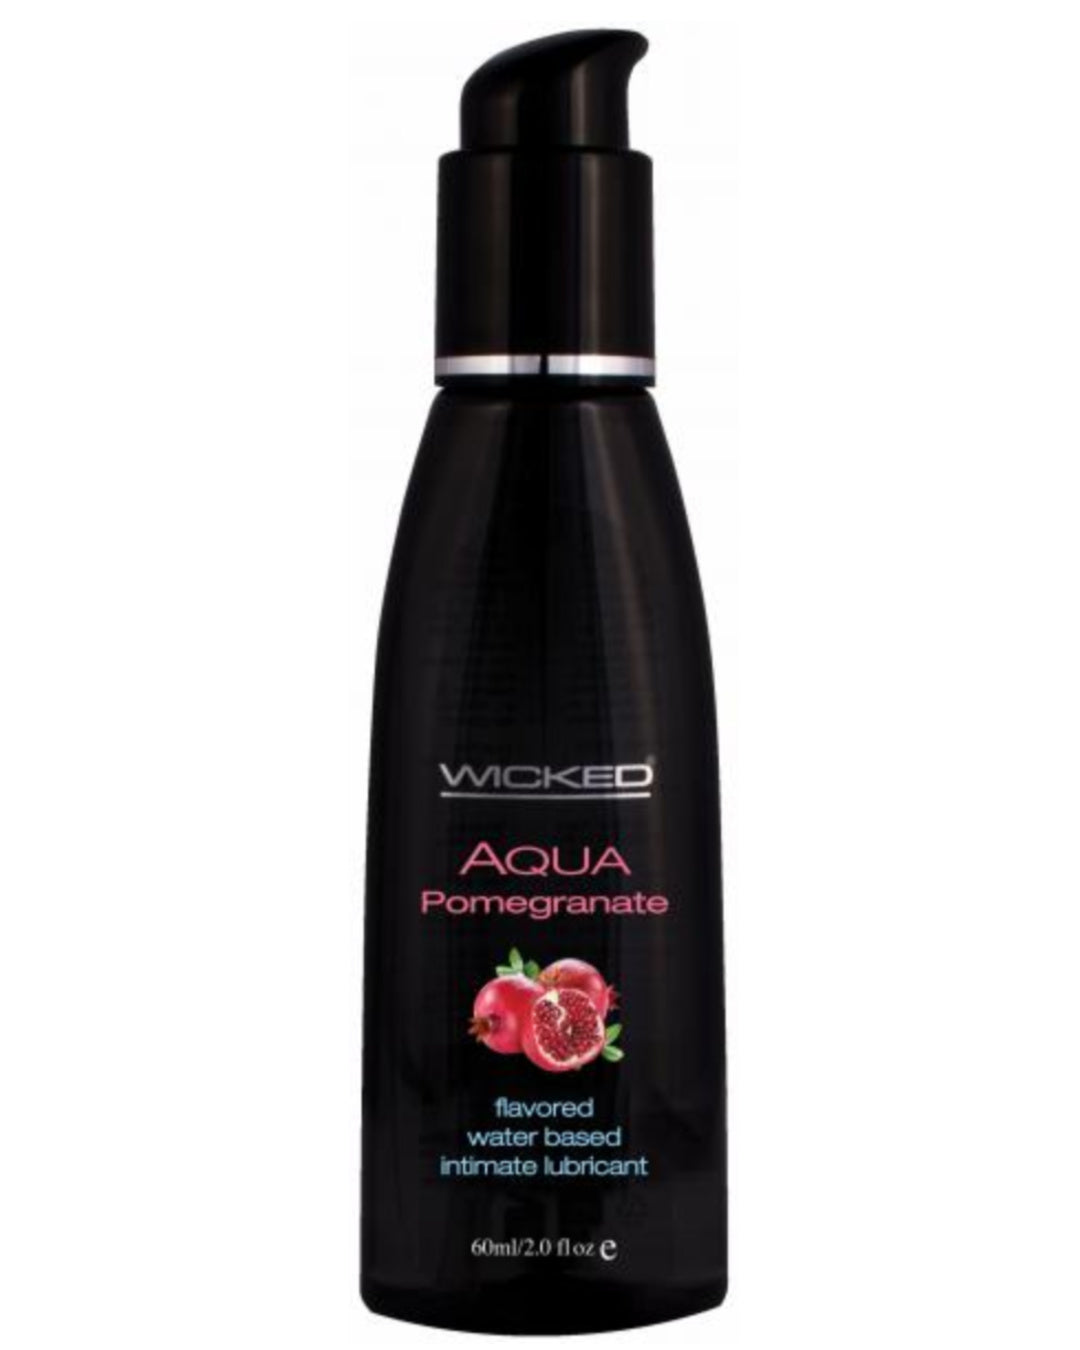 Wicked Aqua Pomegranate Flavored Water Based Lubricant 2oz